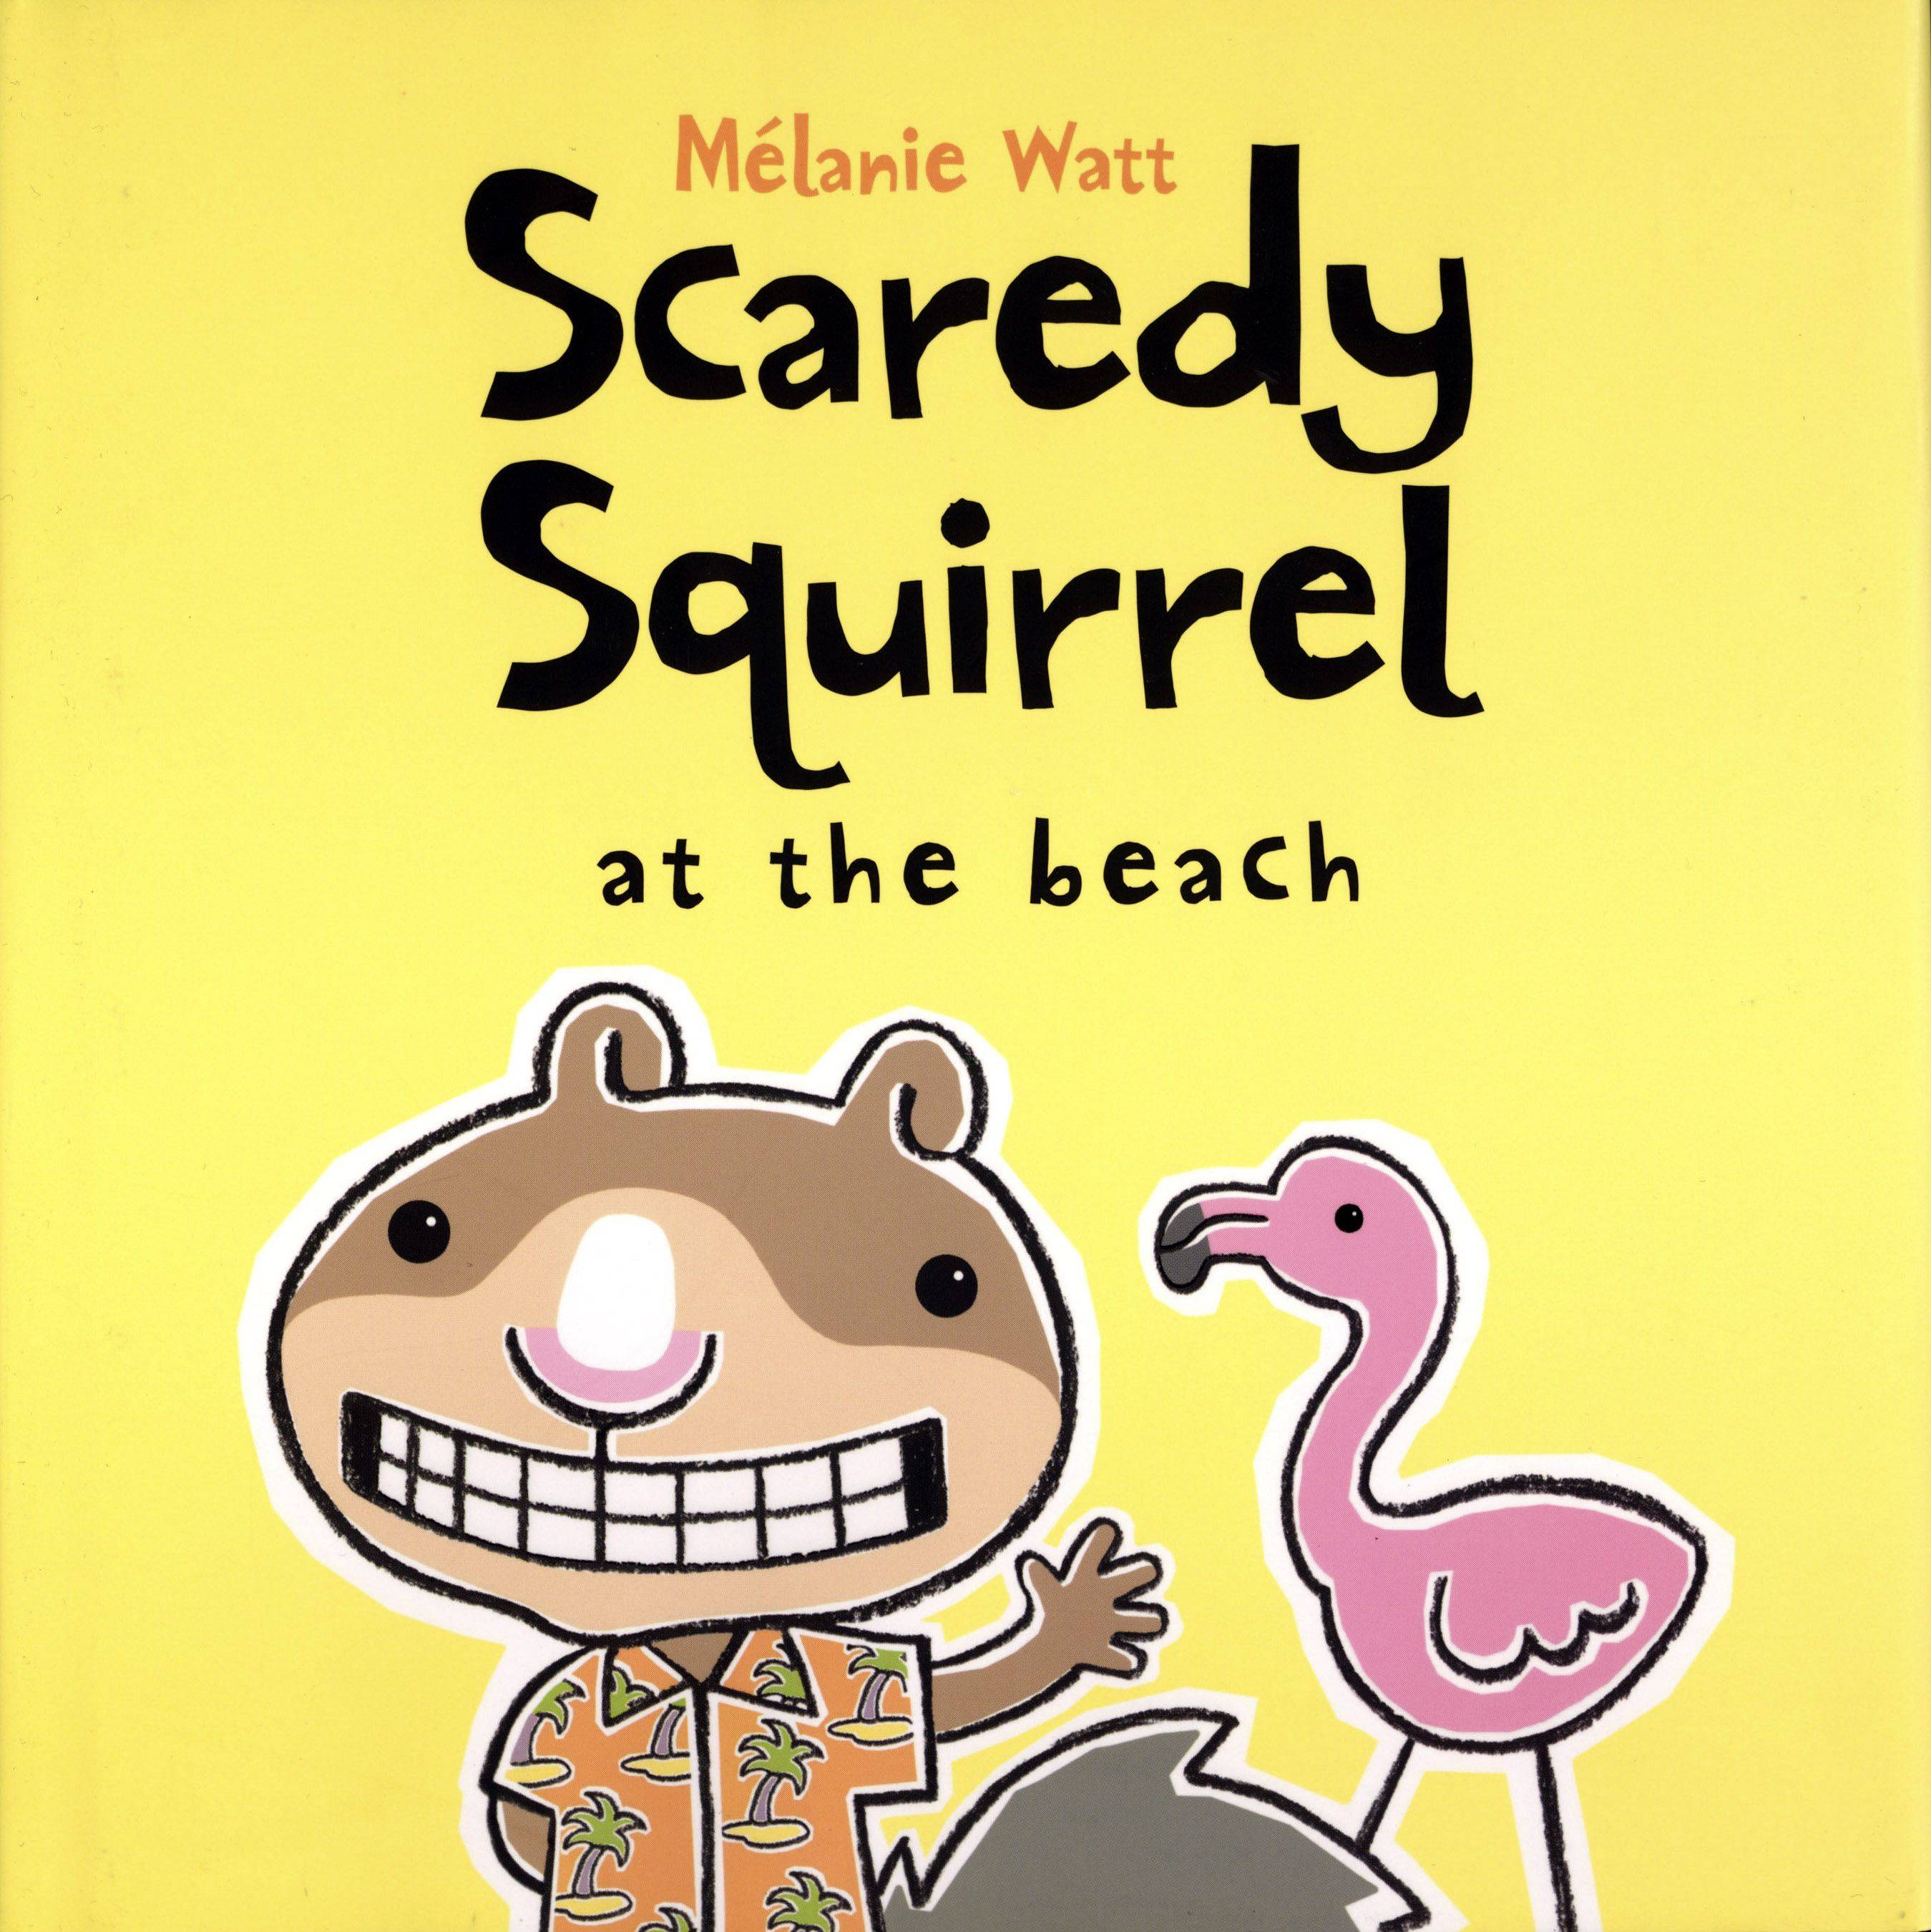 Funny books, like those from the Scaredy Squirrel series, are popular with young school-age children and may help cheer up a child in a crisis as part of the Lisle-Woodridge Fire Protection District's participation in the REACH a Child program.